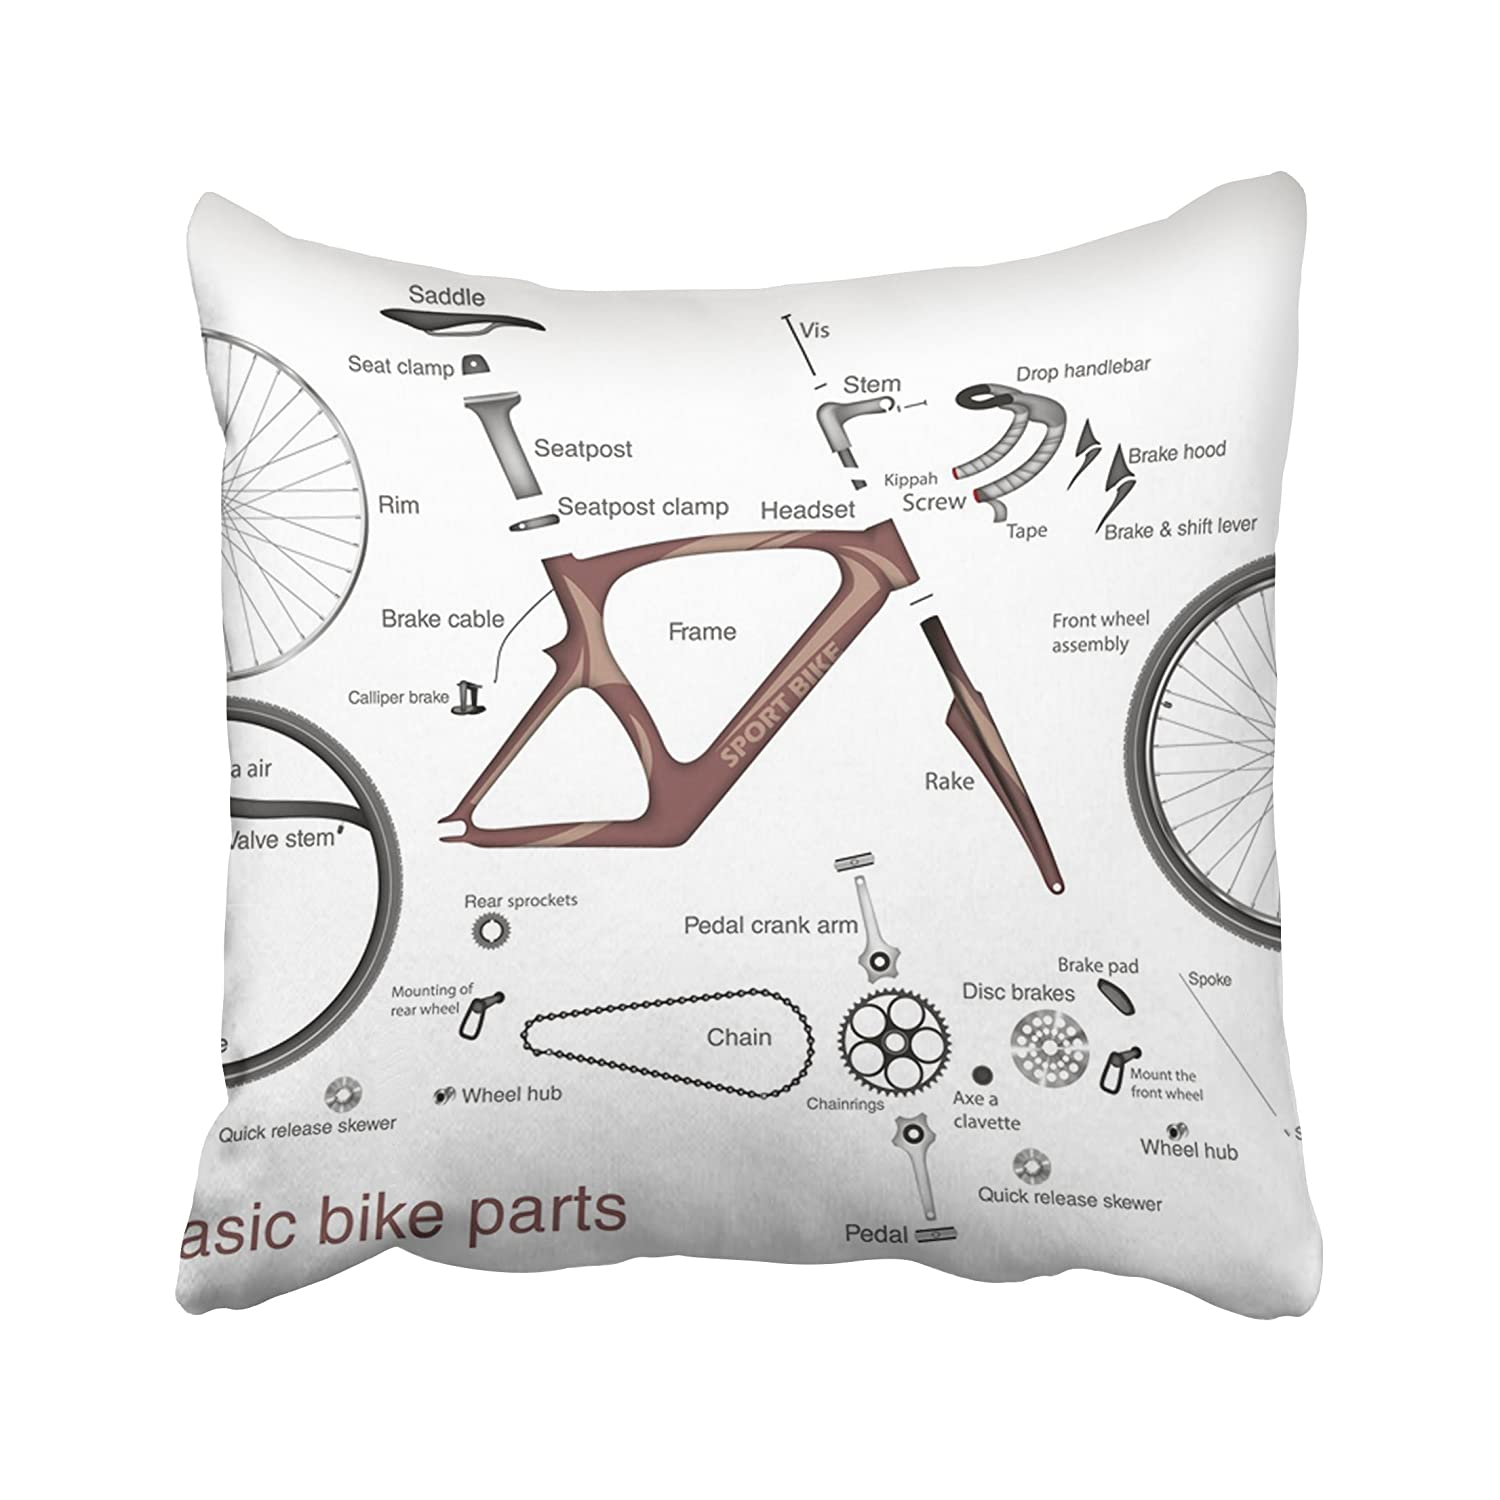 Amazon Com Emvency Bicycle Infographic Of The Main Bike Parts With